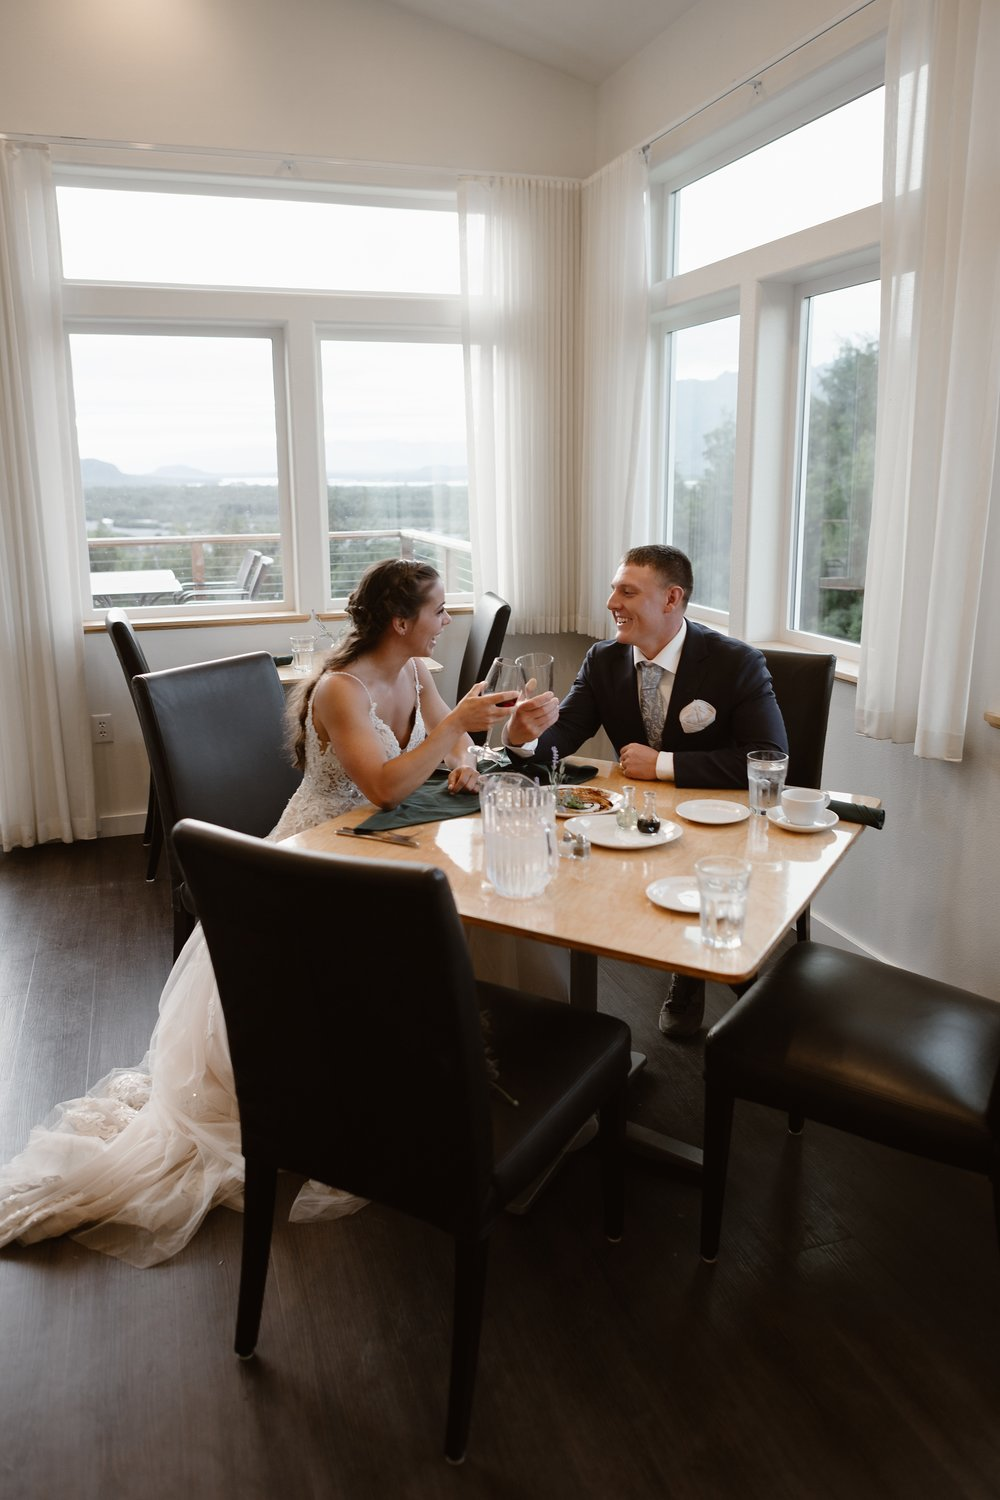 The Knik River Lodge stayed open past their closing time so they could cook the bride and groom a romantic post-elopement meal. This is just one of the unique eloping ideas that could be included in a reception after eloping. In this photo, Jordyn and Connor sit at a wooden table made for four and toast empty glasses over a plate of delicious-looking food.